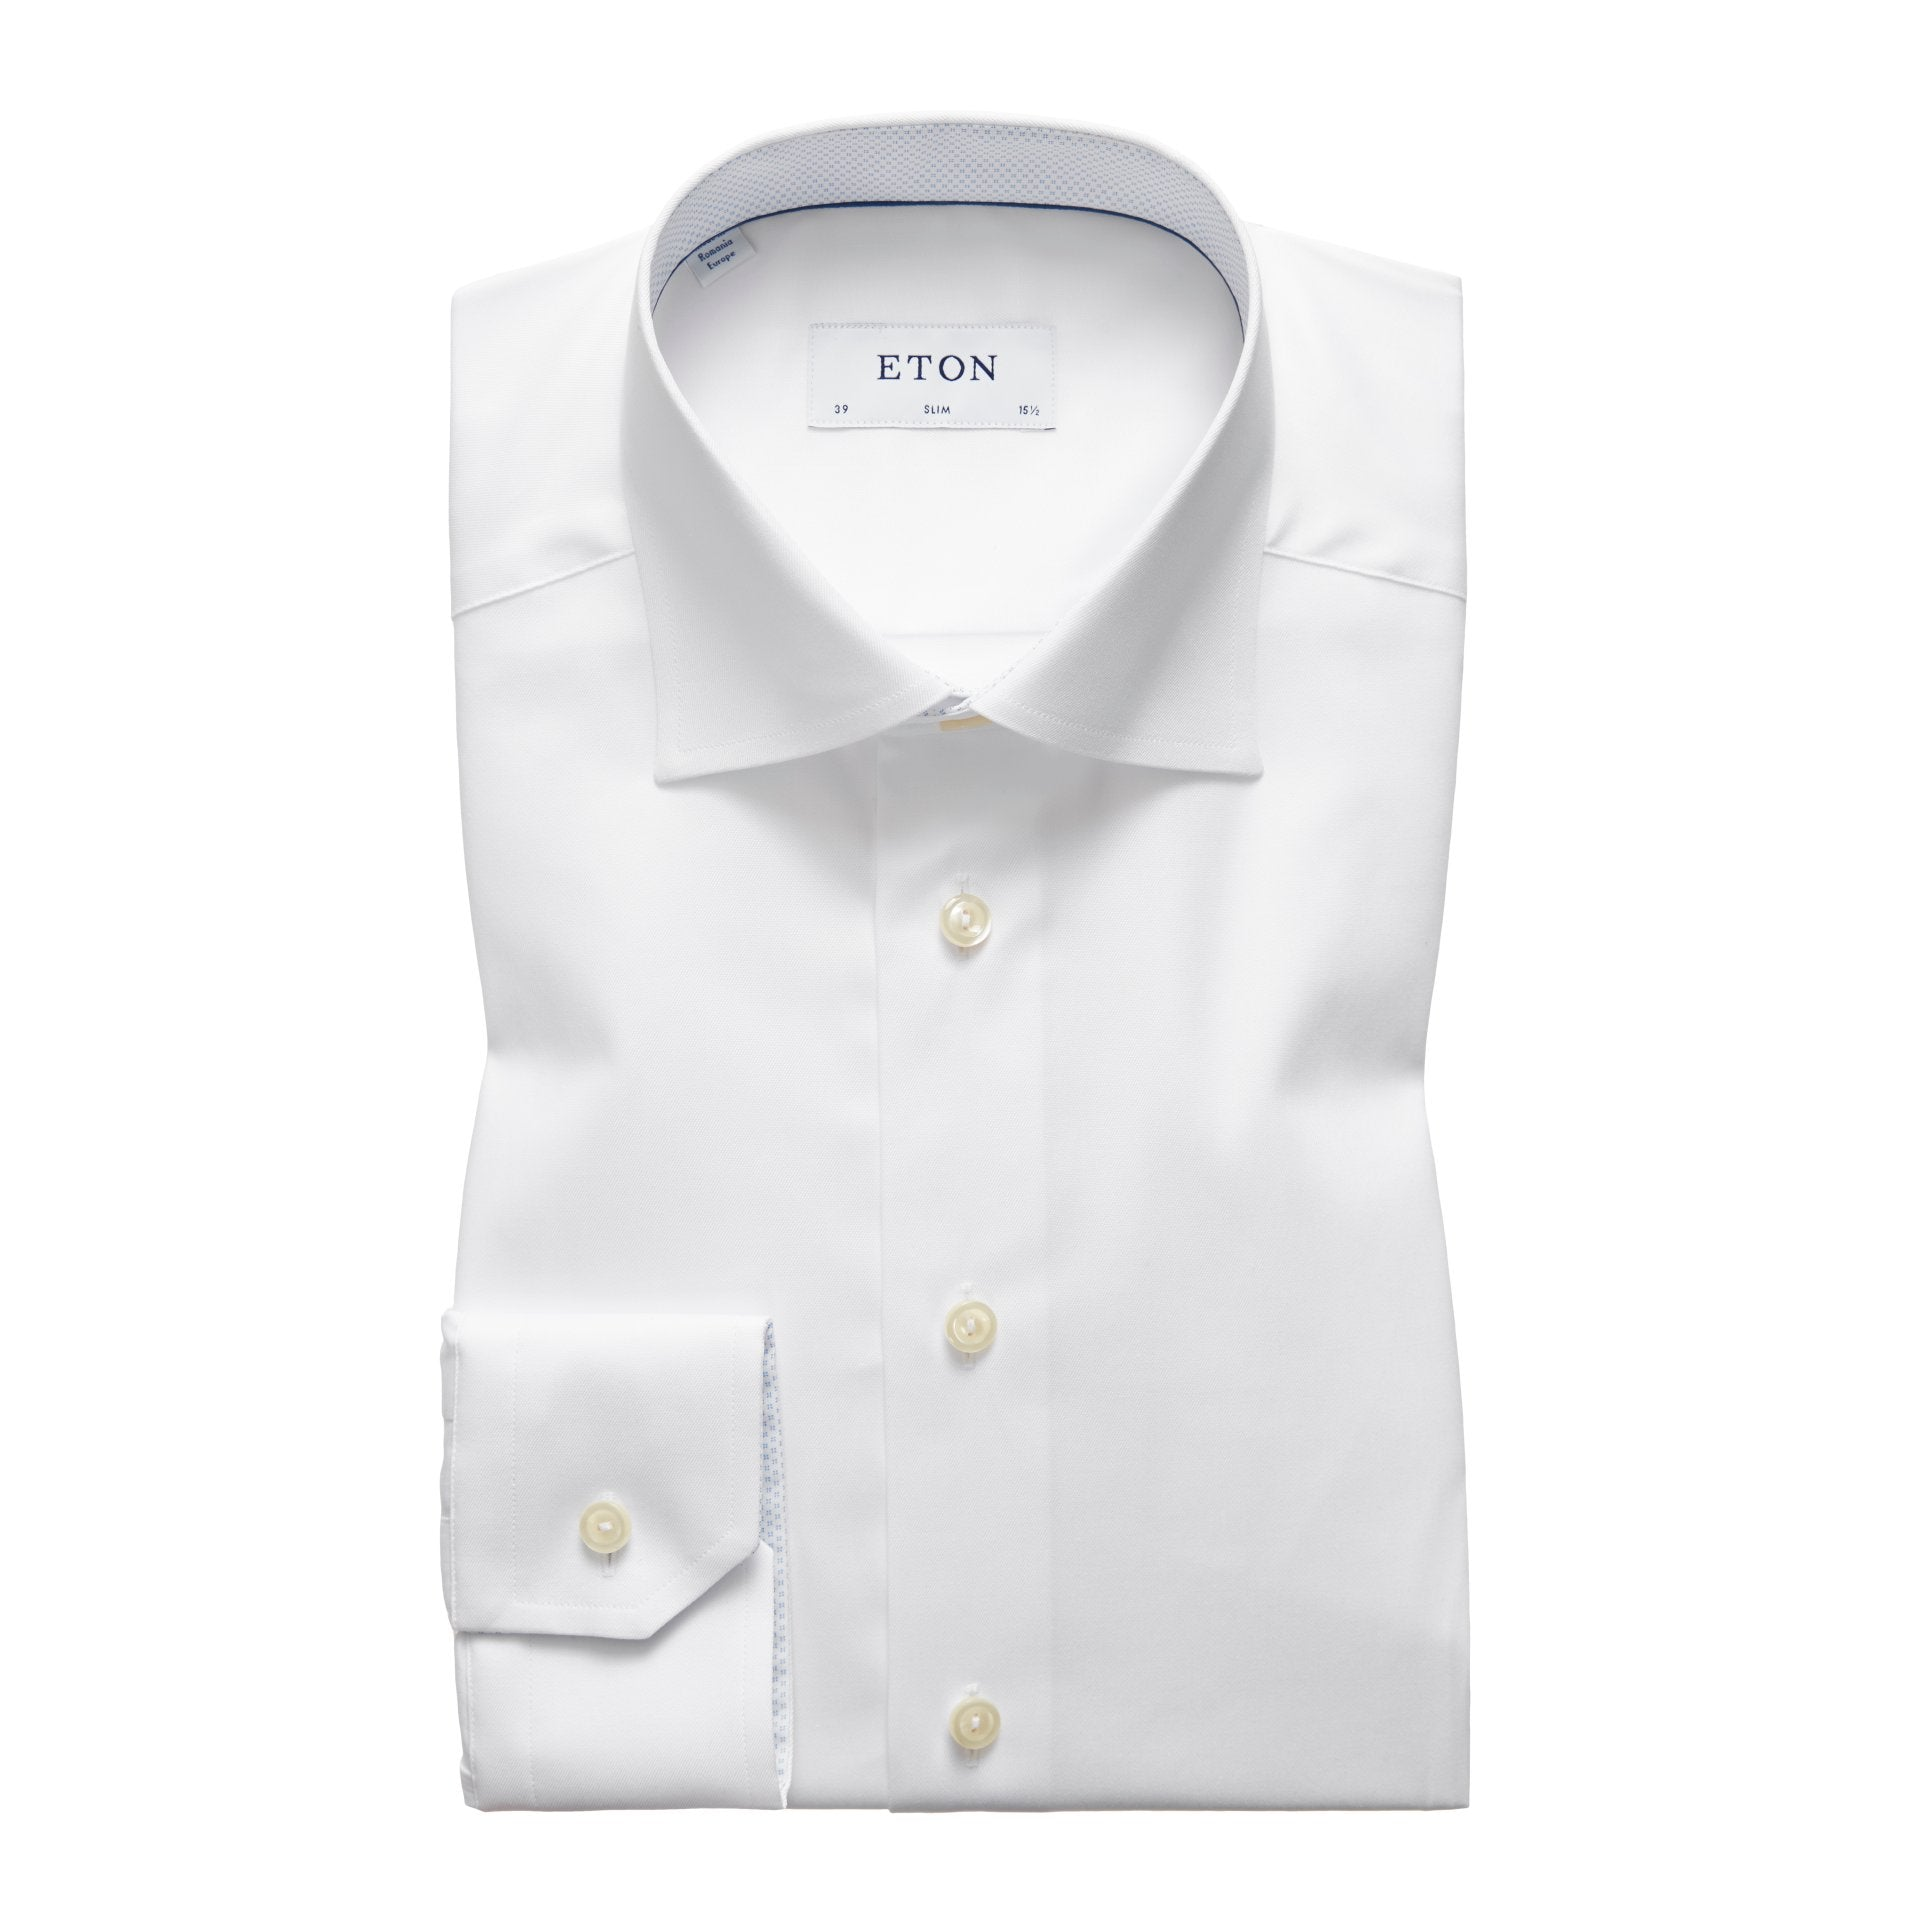 Eton White/ Blue Insert Shirt